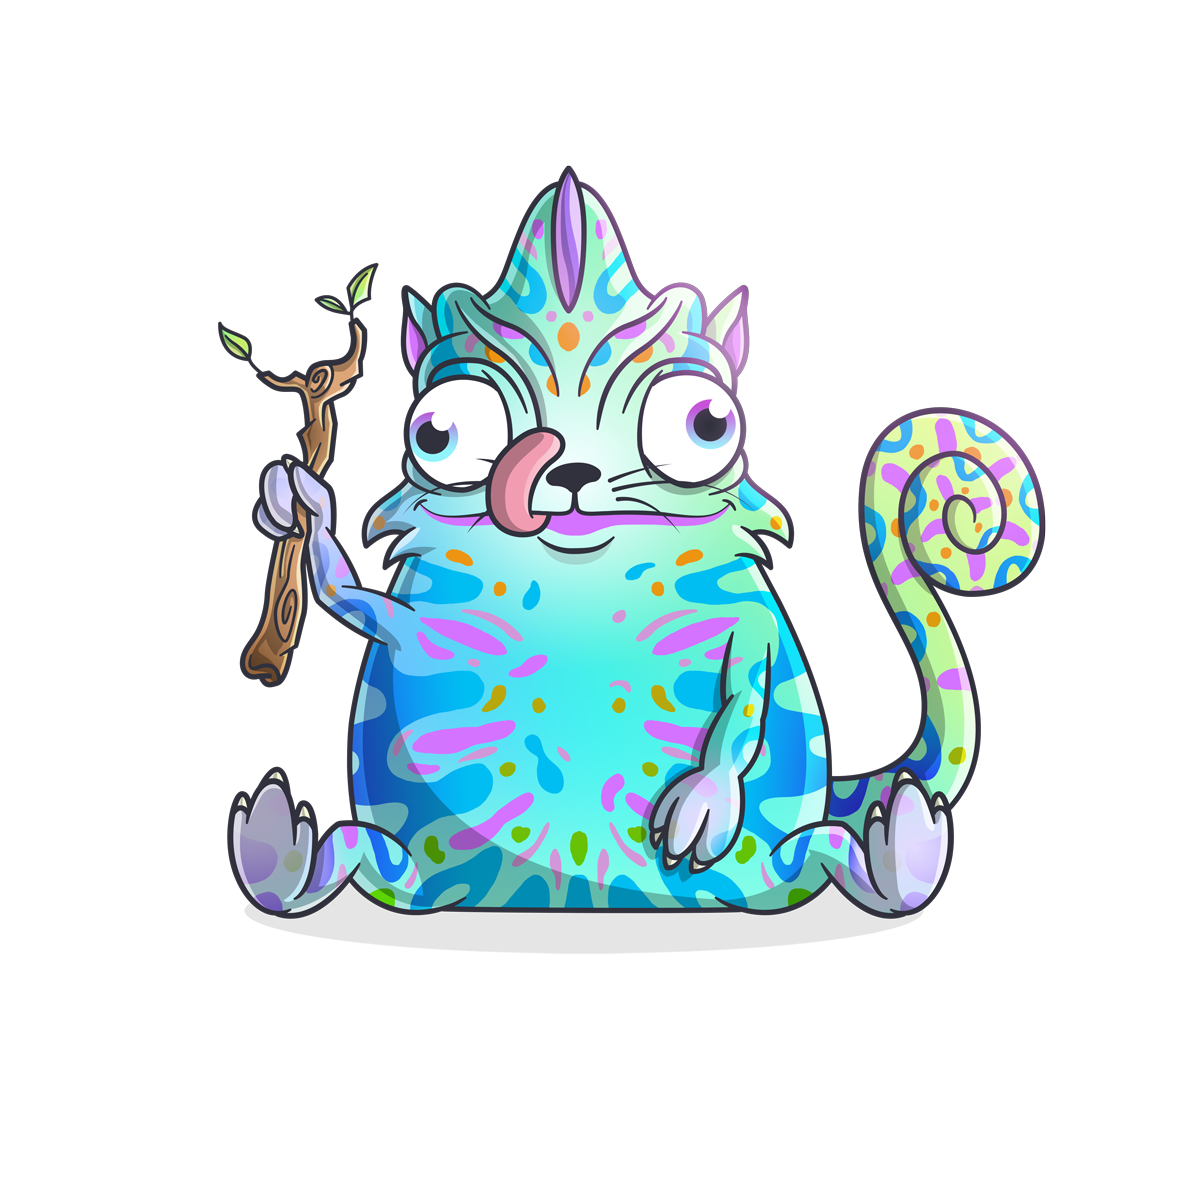 cryptokitty #1903278